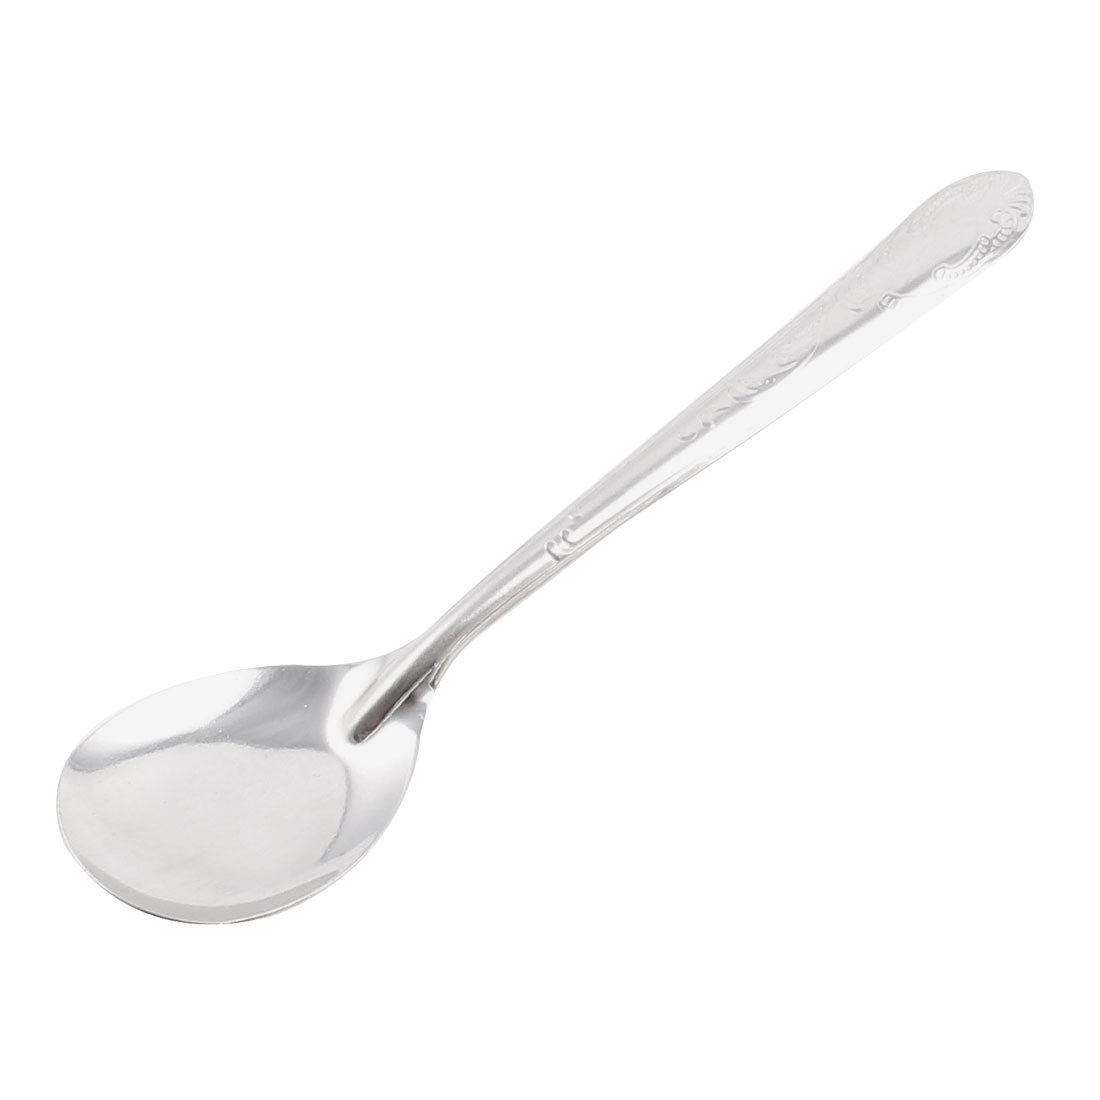 14cm Long Stainless Steel Kitchen Table Tea Soup Serving Spoon Scoop Silver Tone by